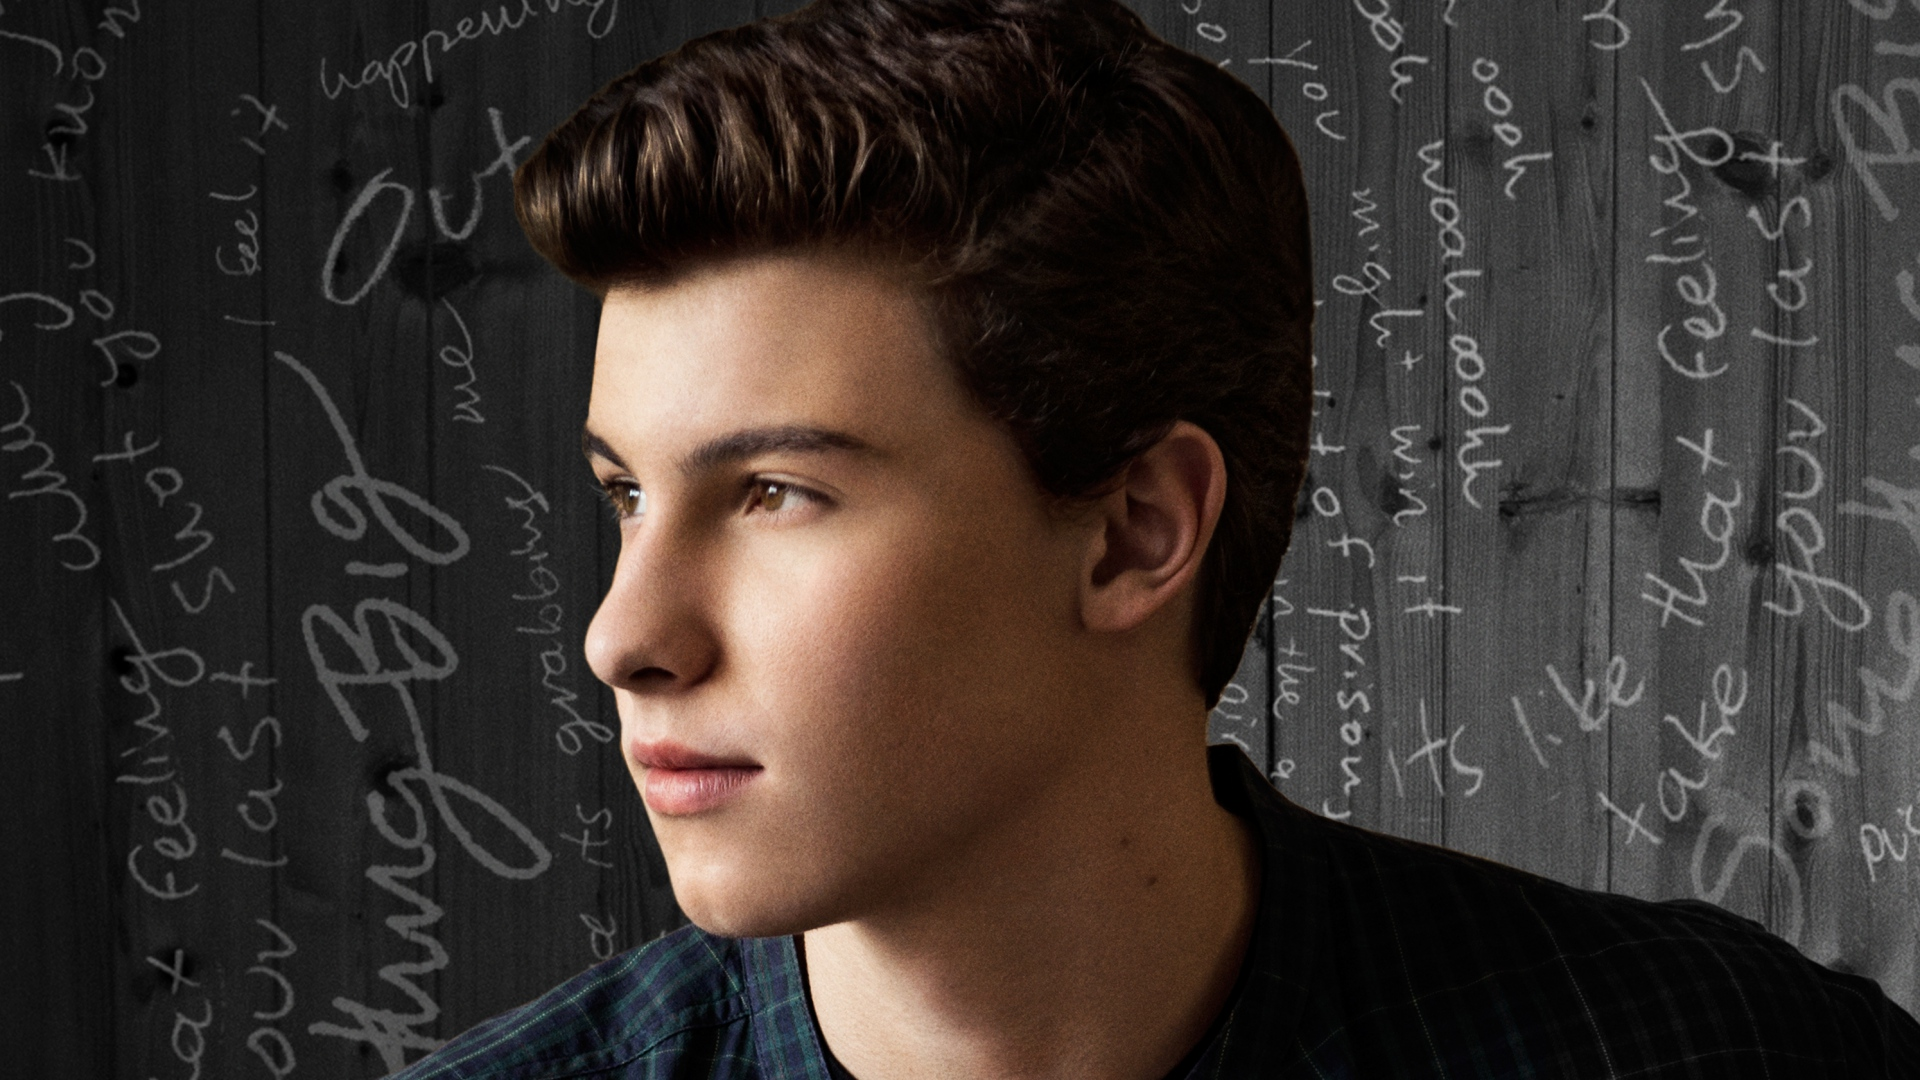 Shawn Mendes images Shawn Wallpaper HD wallpaper and background 1920x1080